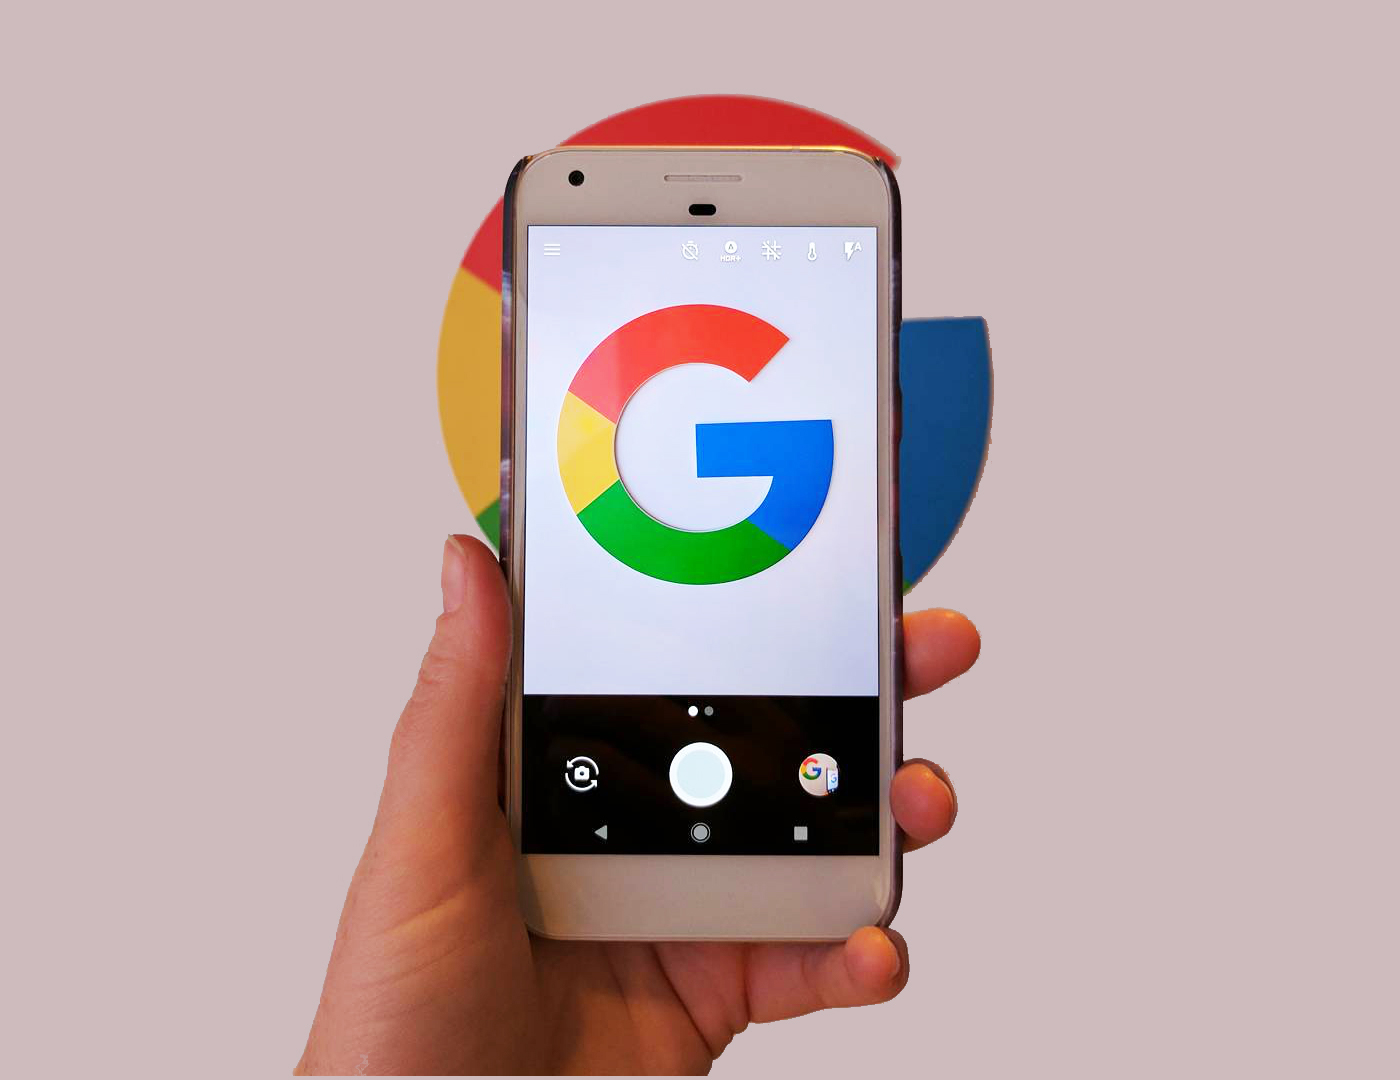 The Google pixel phone held by a hand on a pinkish background